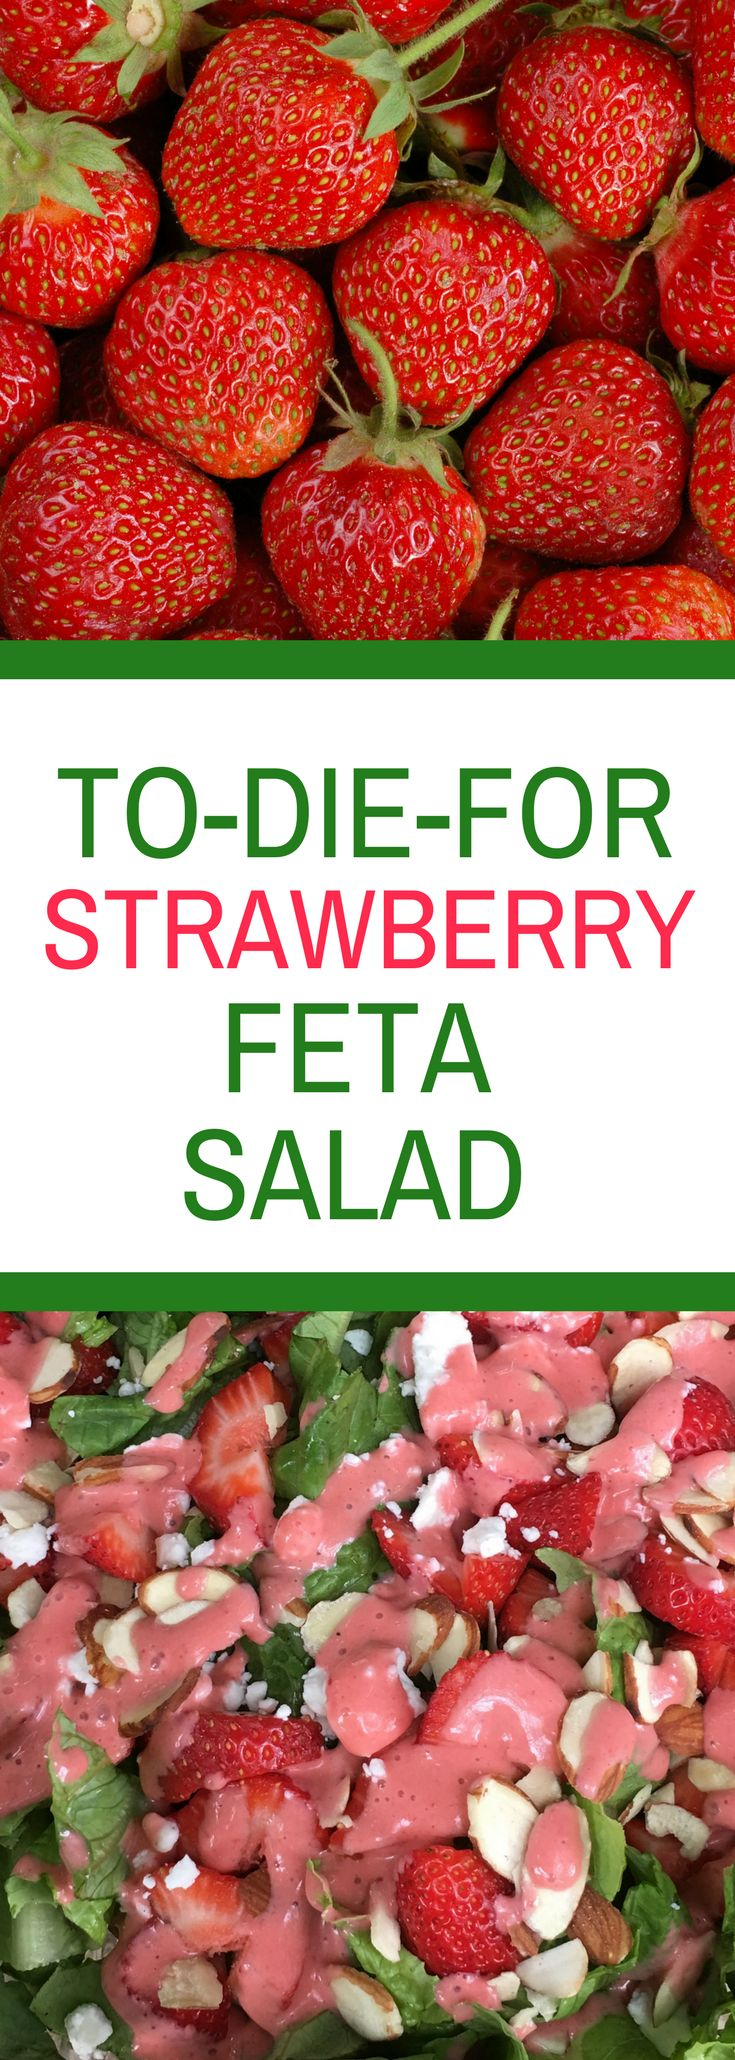 To-Die-For Strawberry Feta Salad - Healthy tastes amazing with this delicious salad with it's creamy strawberry dressing!